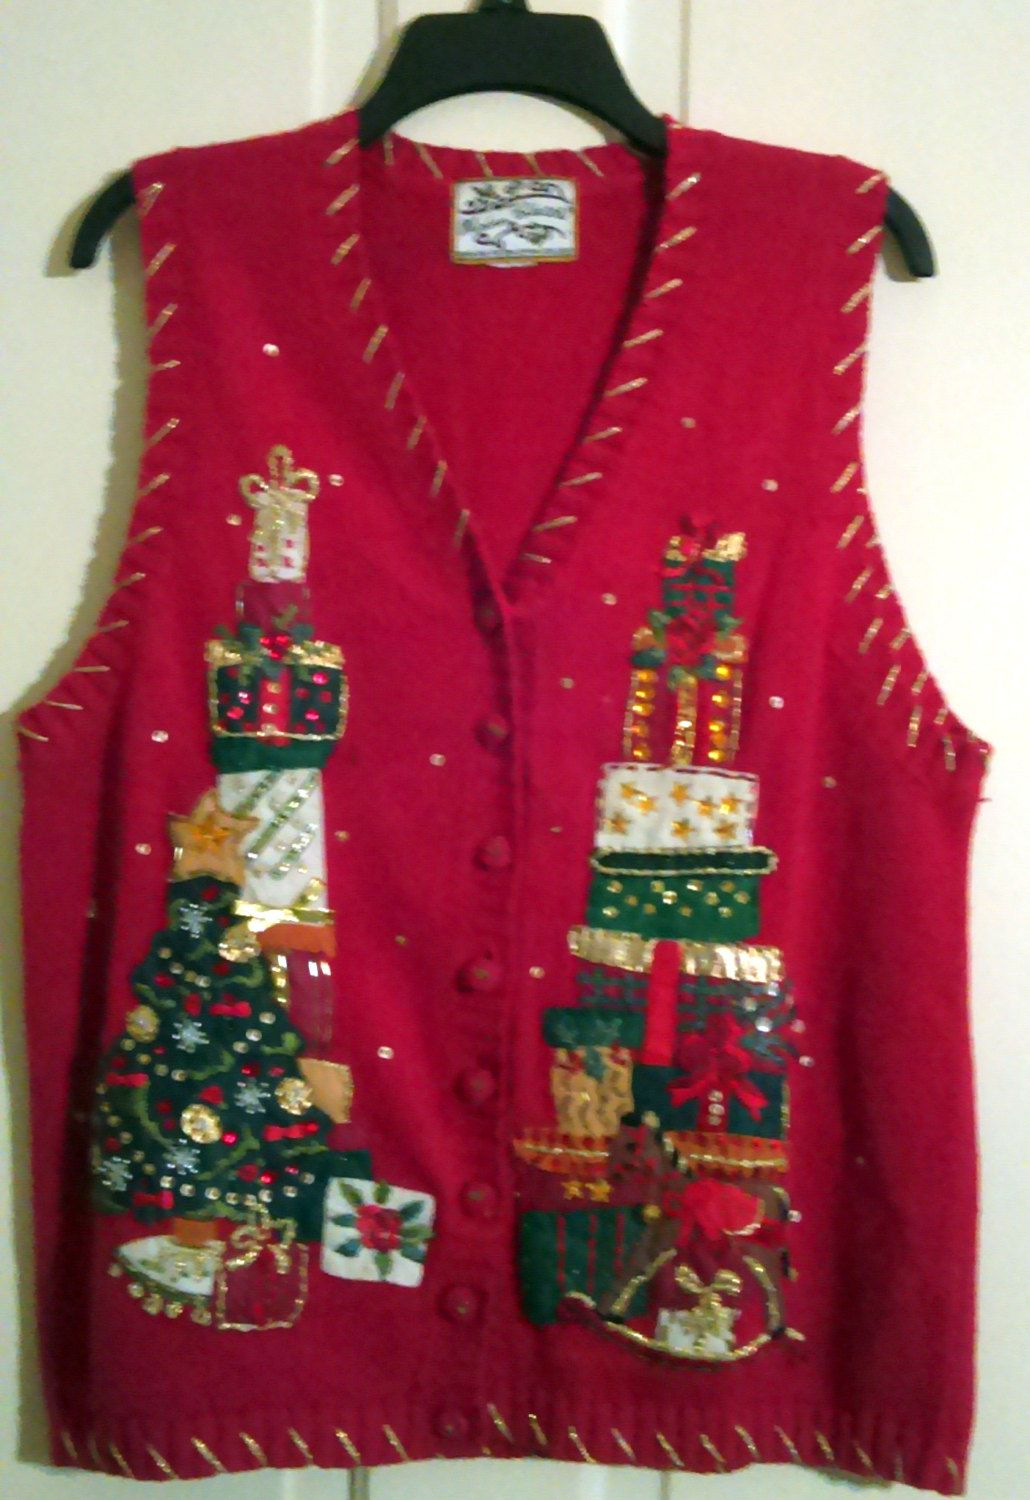 """Heirloom Collectibles Appliqued Christmas Tree & Rocking Horse and Gifts Ugly Sweater Vest Bust 38"""" by AntiquesandStuff56 on Etsy"""